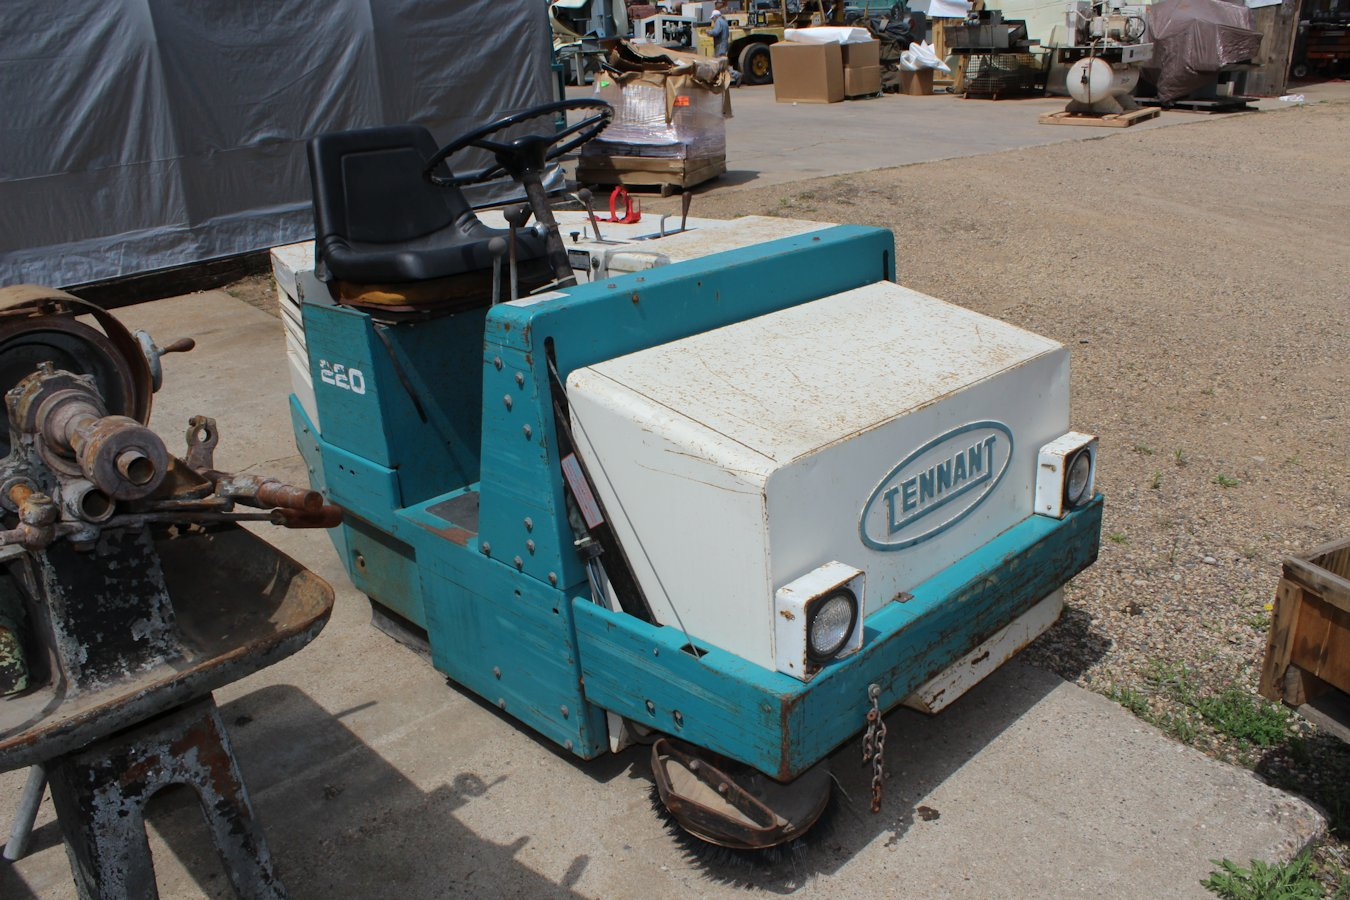 Sweepers Scrubbers Inter Plant Sales Machinery Wiring Harness Iding Machine For Sale Tennant 220 Riding Sweeper Model S 2959 Date Mfg 1998 12hp Kohler Engine K301s 47413 Gas Over Hydraulic Estimated 10 Gallon Tank Under